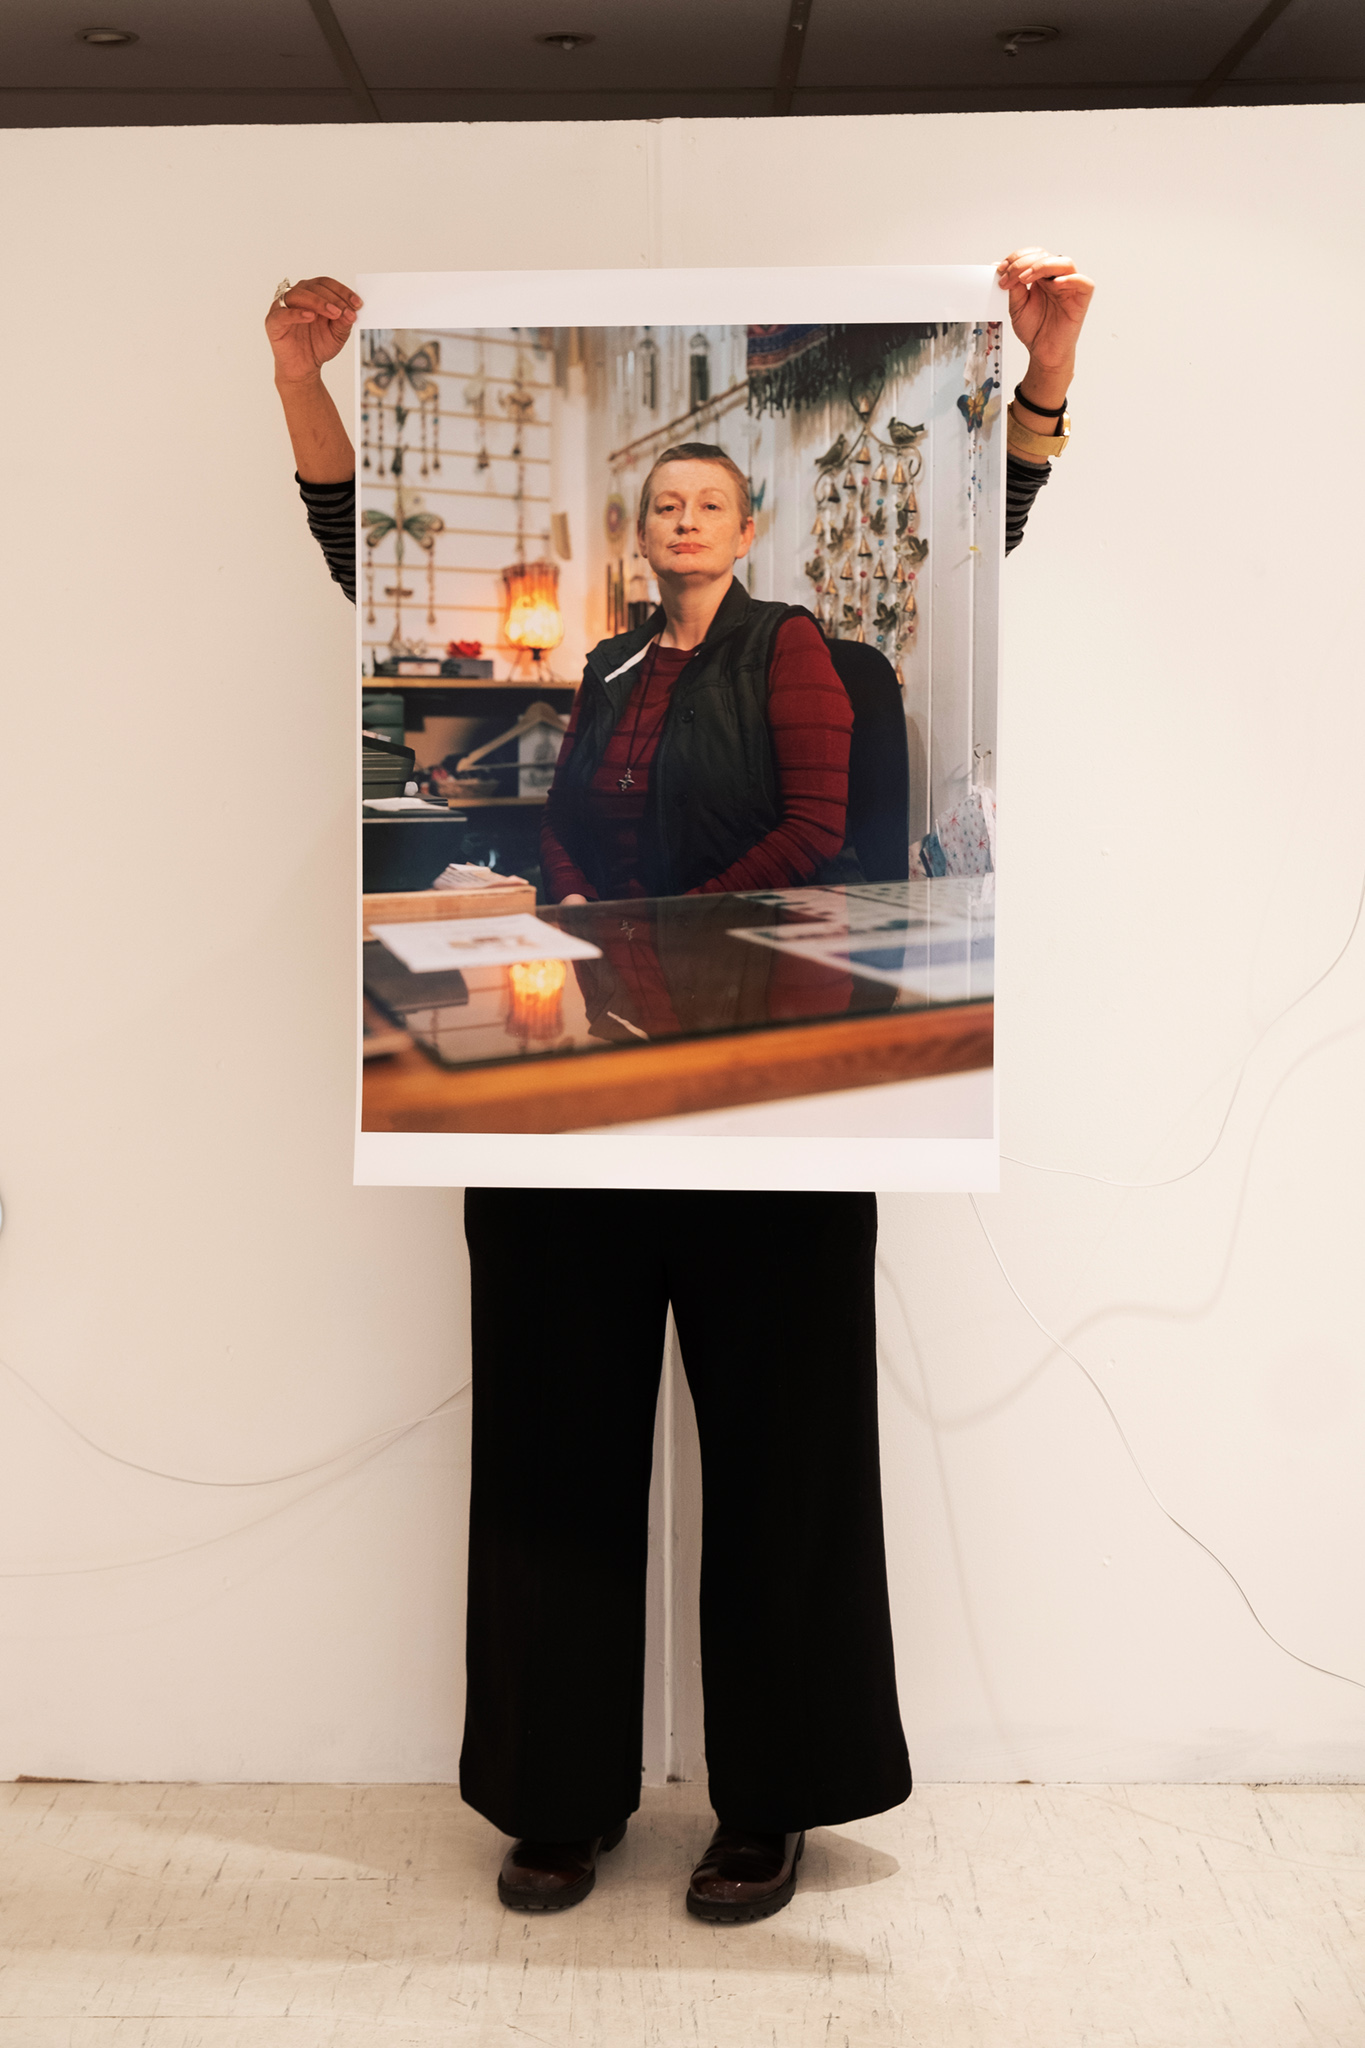 'B' holding up the A1 sized print of Carol, Croydon Buddhist Centre in THE LOFT exhibition space.  Taken by Graham Land, 29th March, 2019